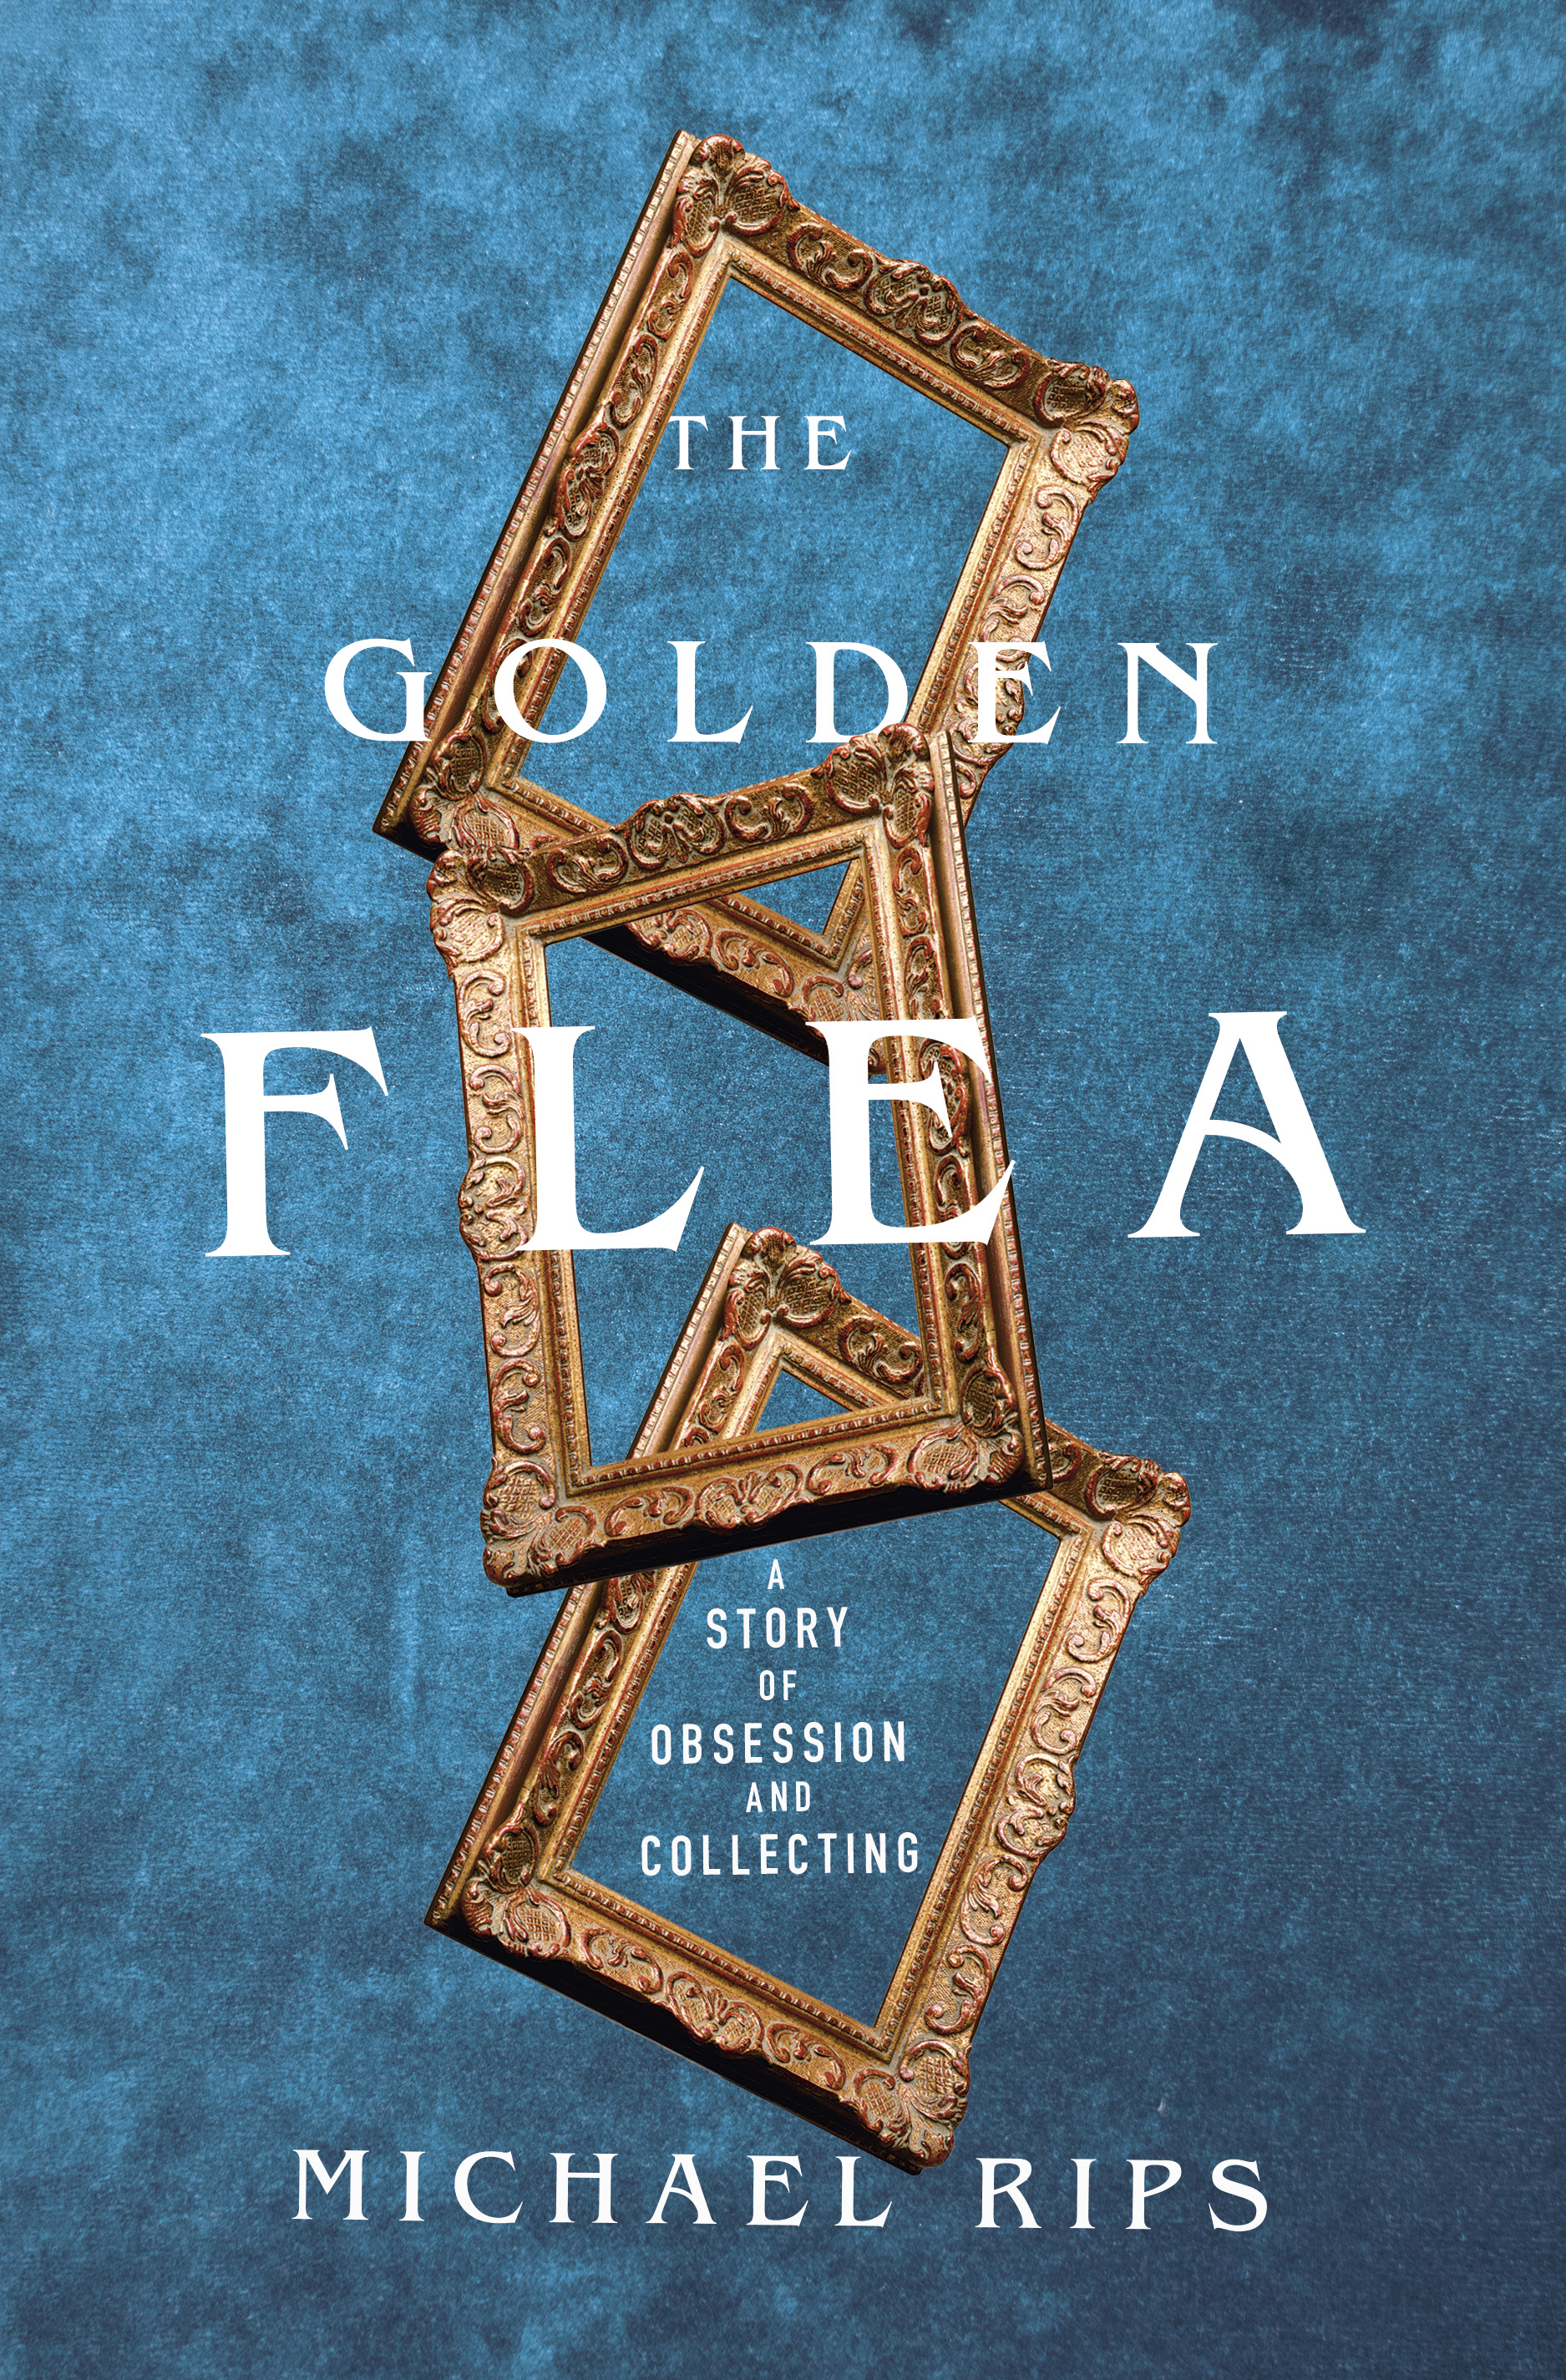 Book Launch: The Golden Flea by Michael Rips (POSTPONED)